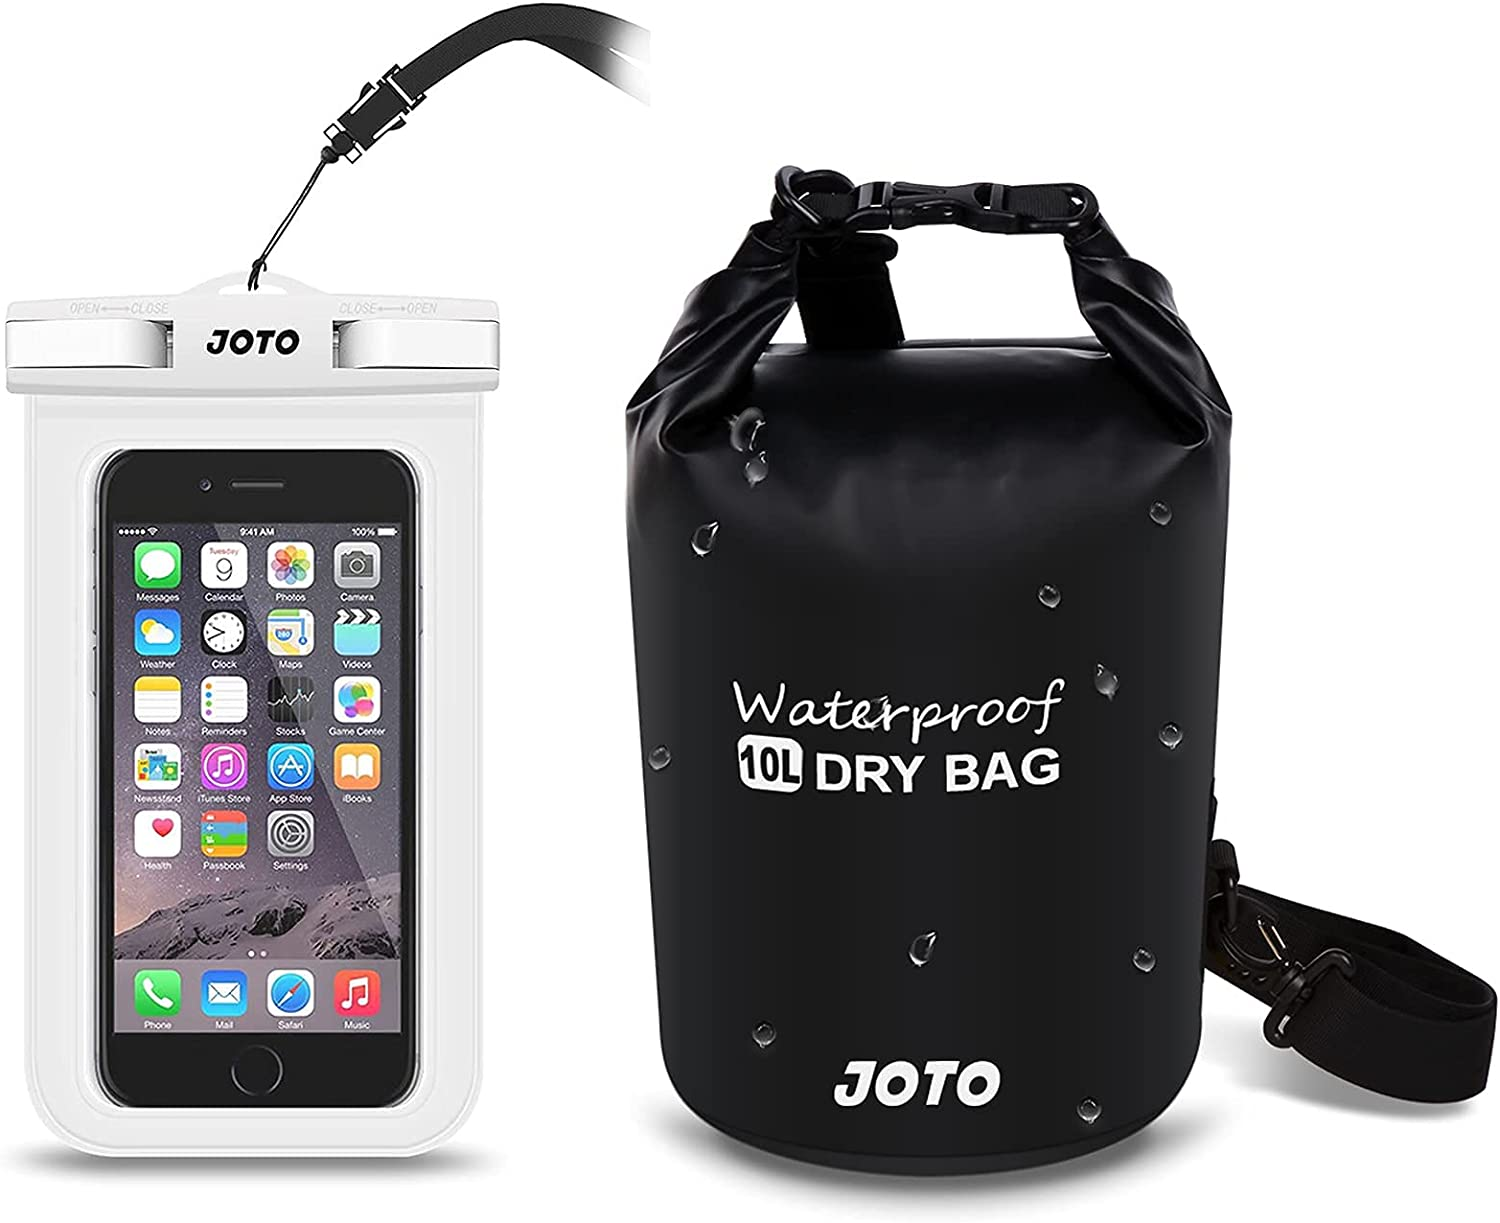 JOTO Universal Waterproof Pouch Cellphone Dry Bag Case Bundle with 10L Waterproof Dry Bag for Outdoor Activities